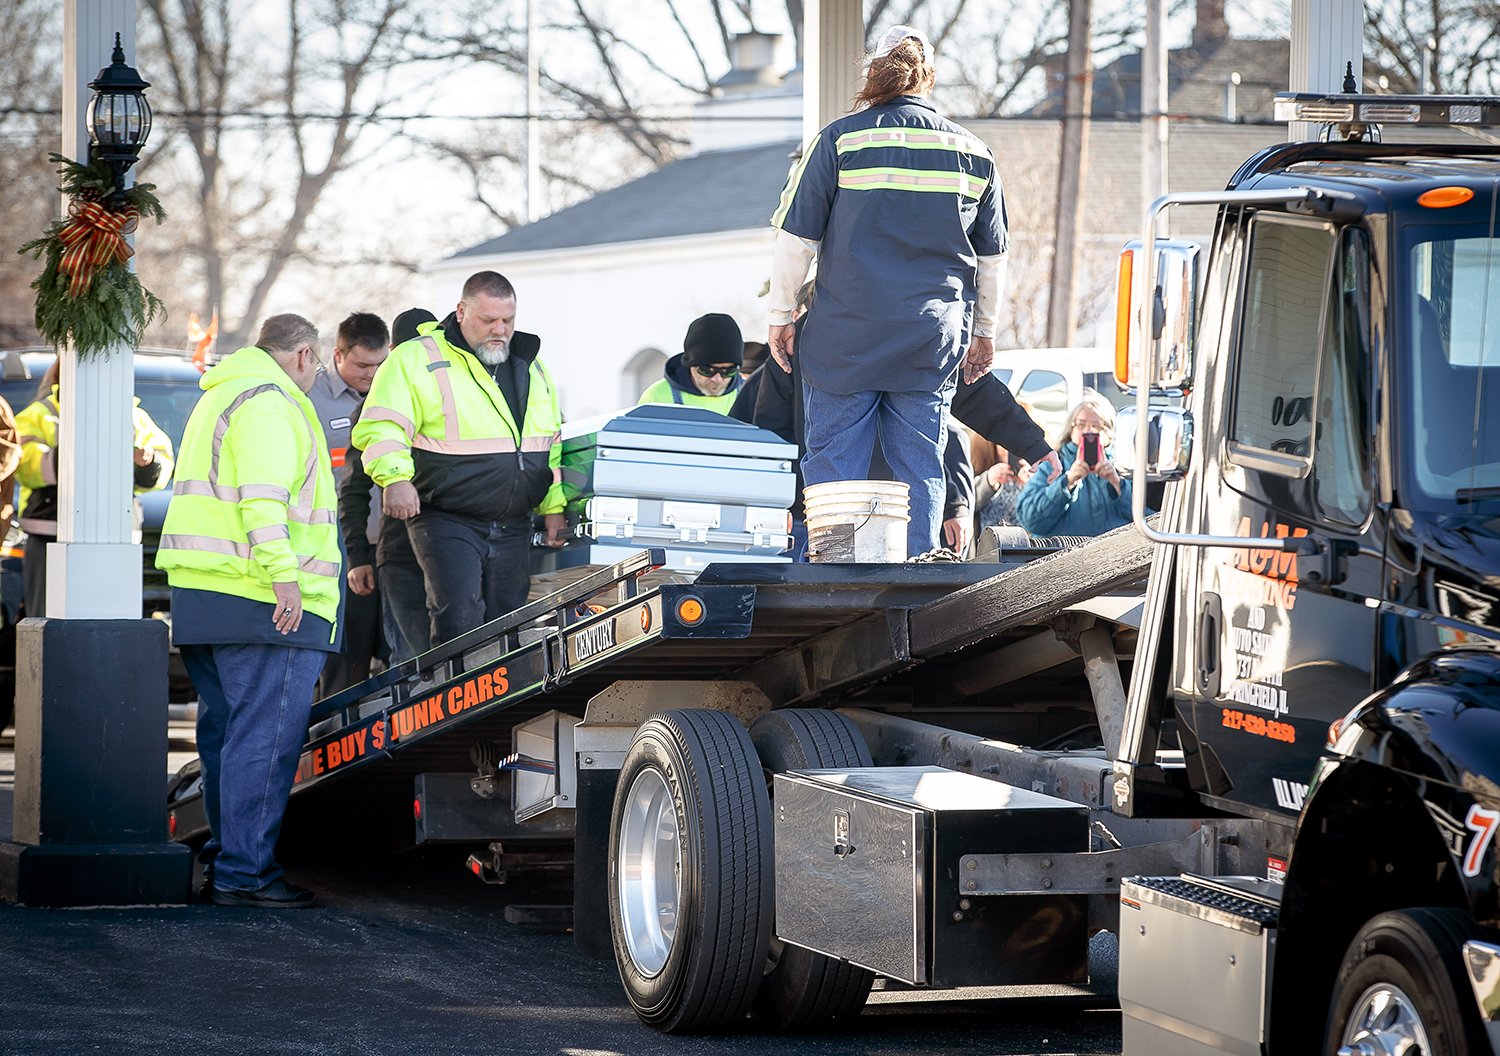 Pallbearers carry the casket of Ron Chaney up the flatbed of a tow-truck from A&M Towing and Salvage Dec. 16 at Kirlin-Egan & Butler Funeral Home. Chaney was struck and killed by a passing motorist on Interstate 72 while he loaded a disabled vehicle. Justin L. Fowler/The State Journal-Register